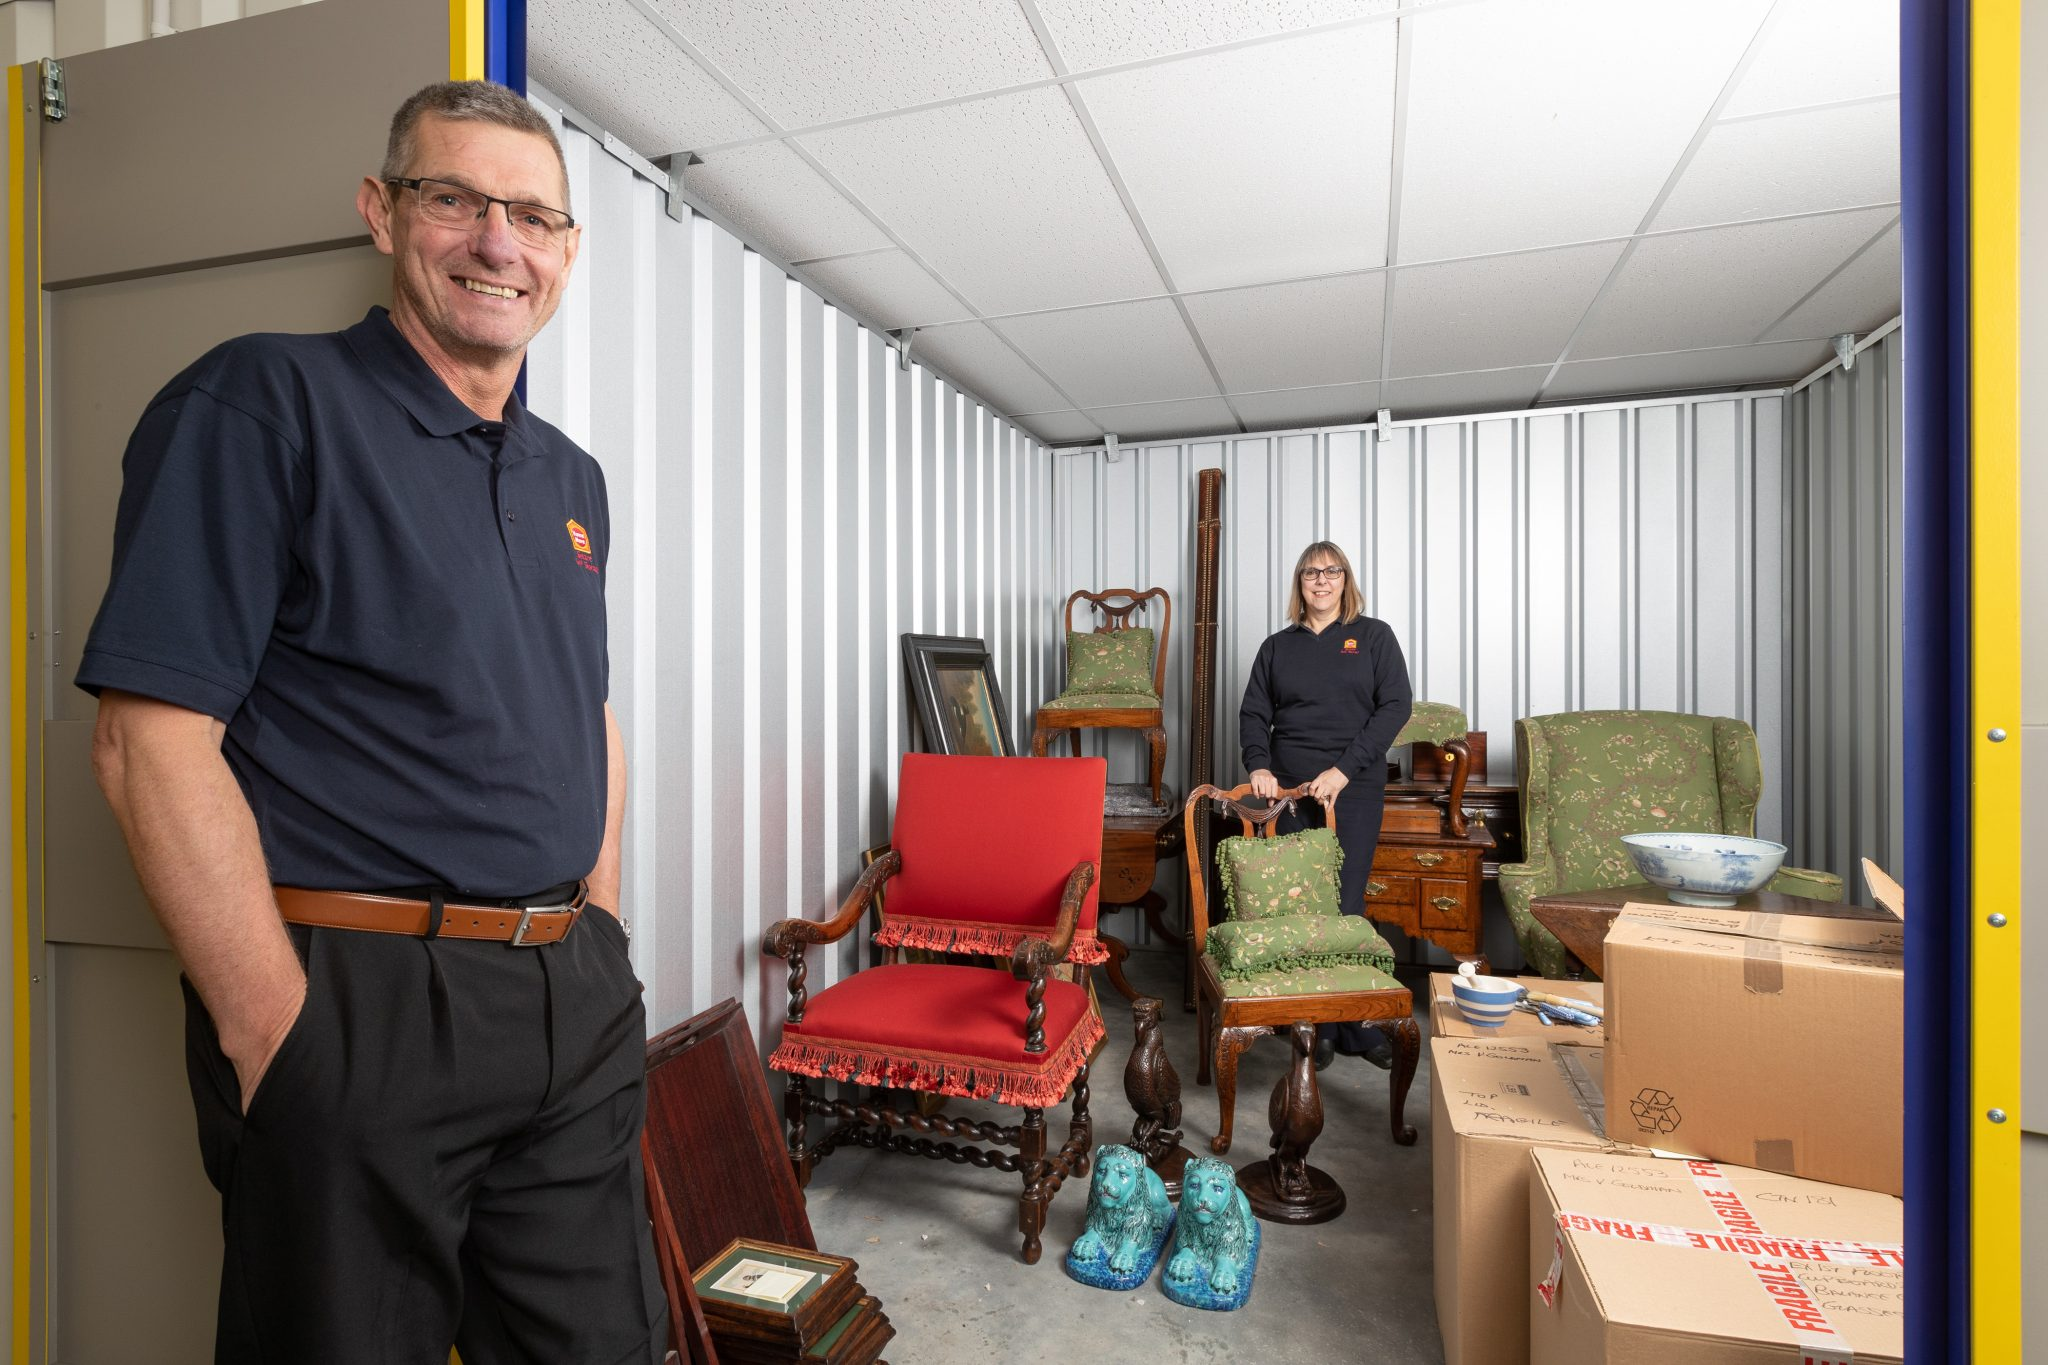 Suffolk homeowners see benefits of self-storage during refurbishment projects